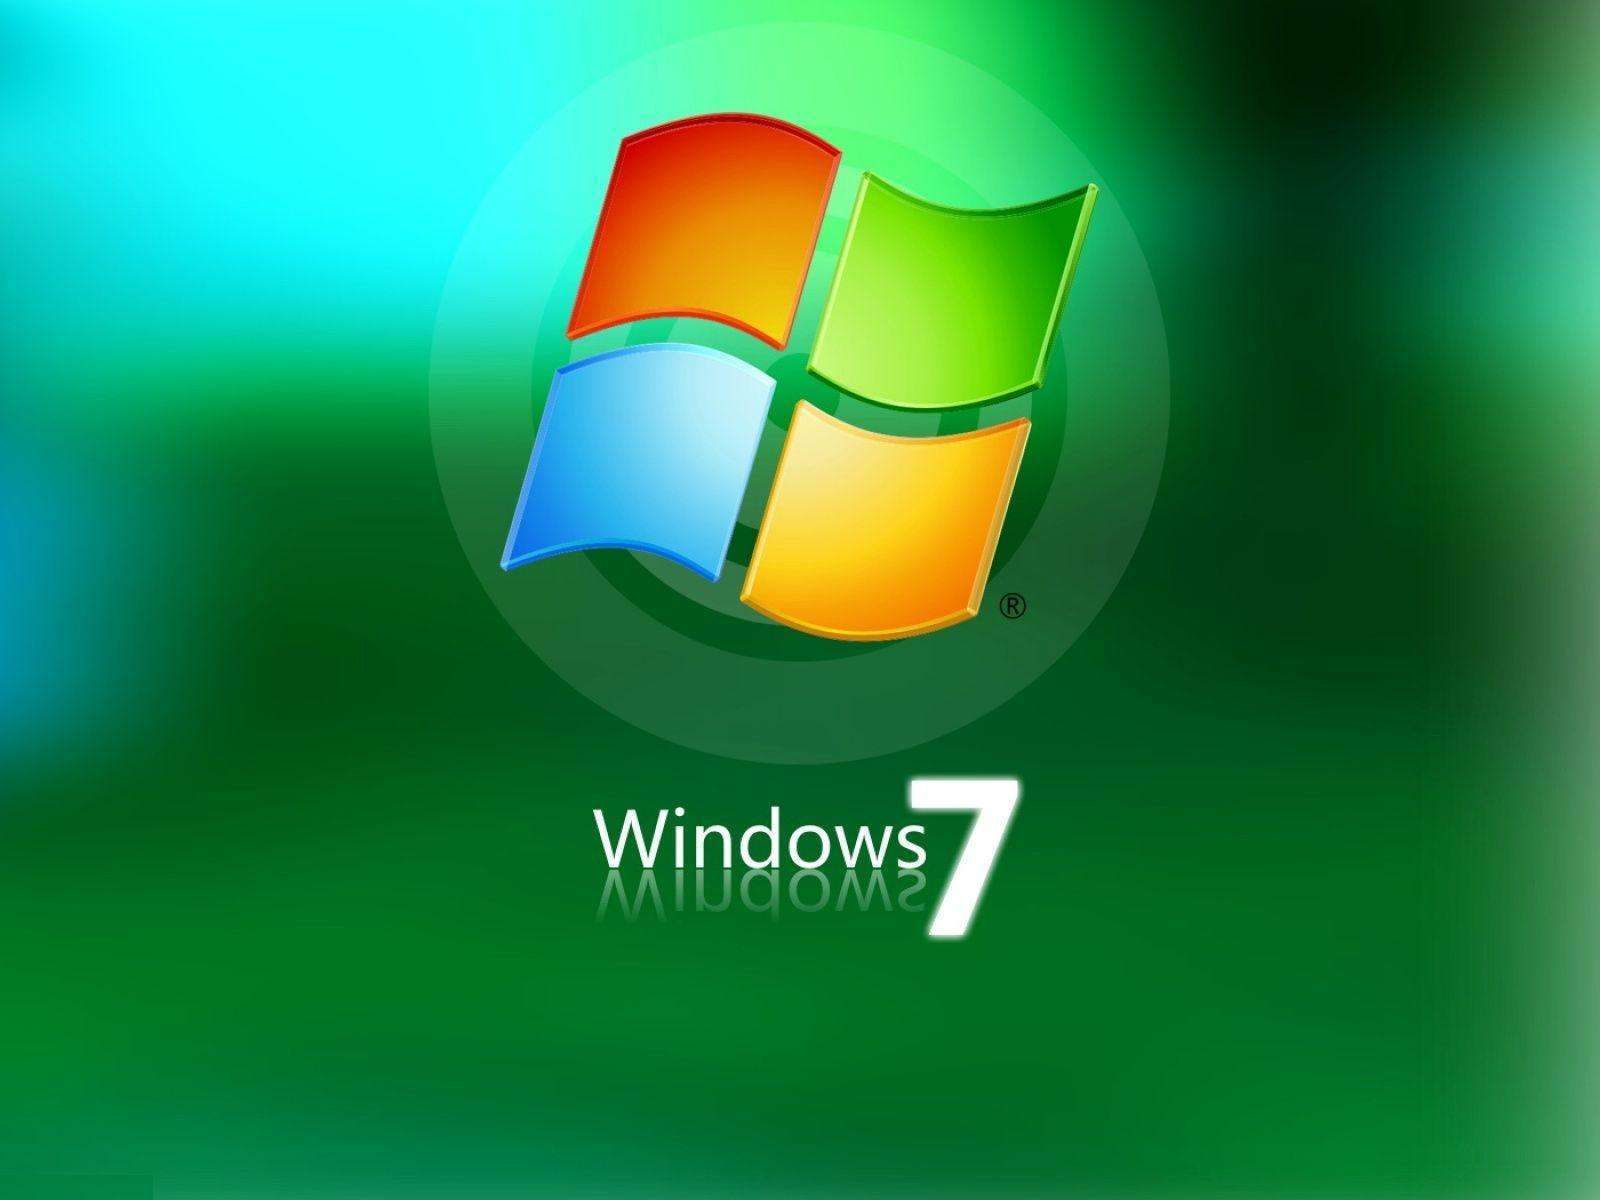 Window 7 Wallpapers Backgrounds Desktop Desktop Wallpapers Backgrounds Windows